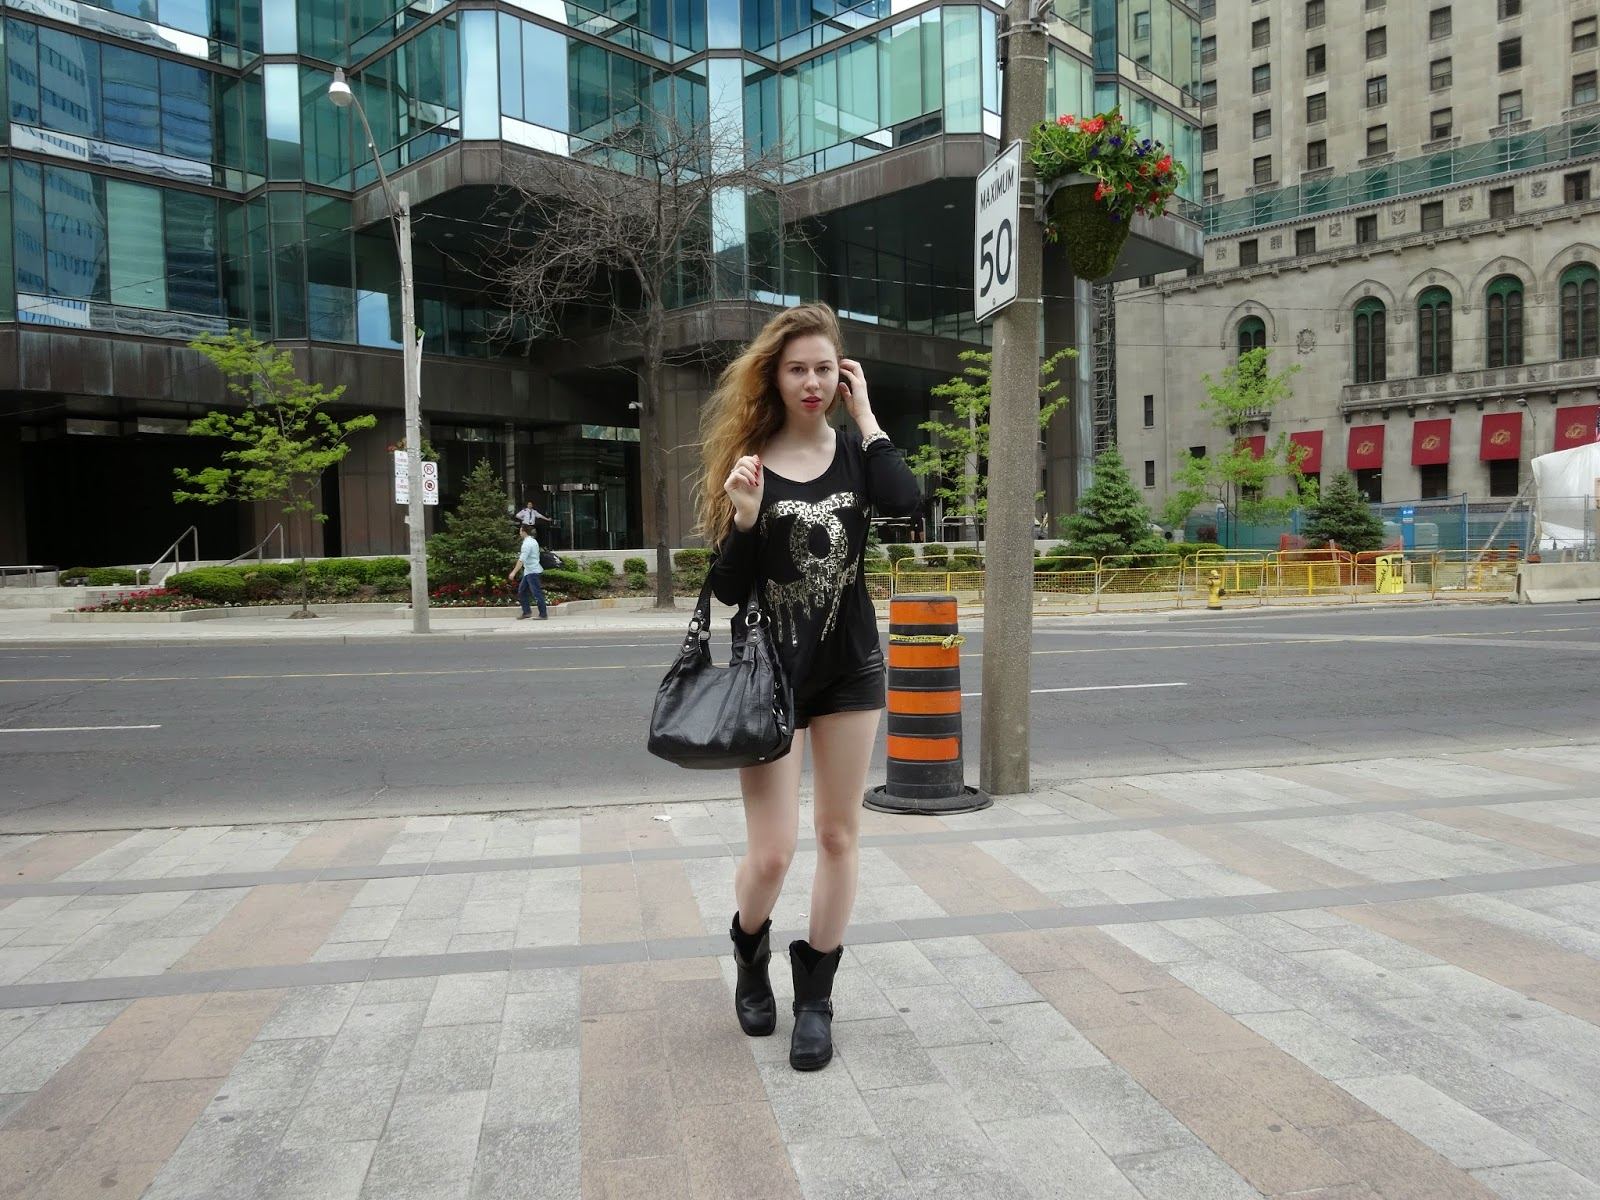 annie robinson, fabincblog, fashion and beauty inc, street style, toronto, coco chanel, horse riding boots, coach bag, material girl, summer, ootd, city style, fashion blogger canada